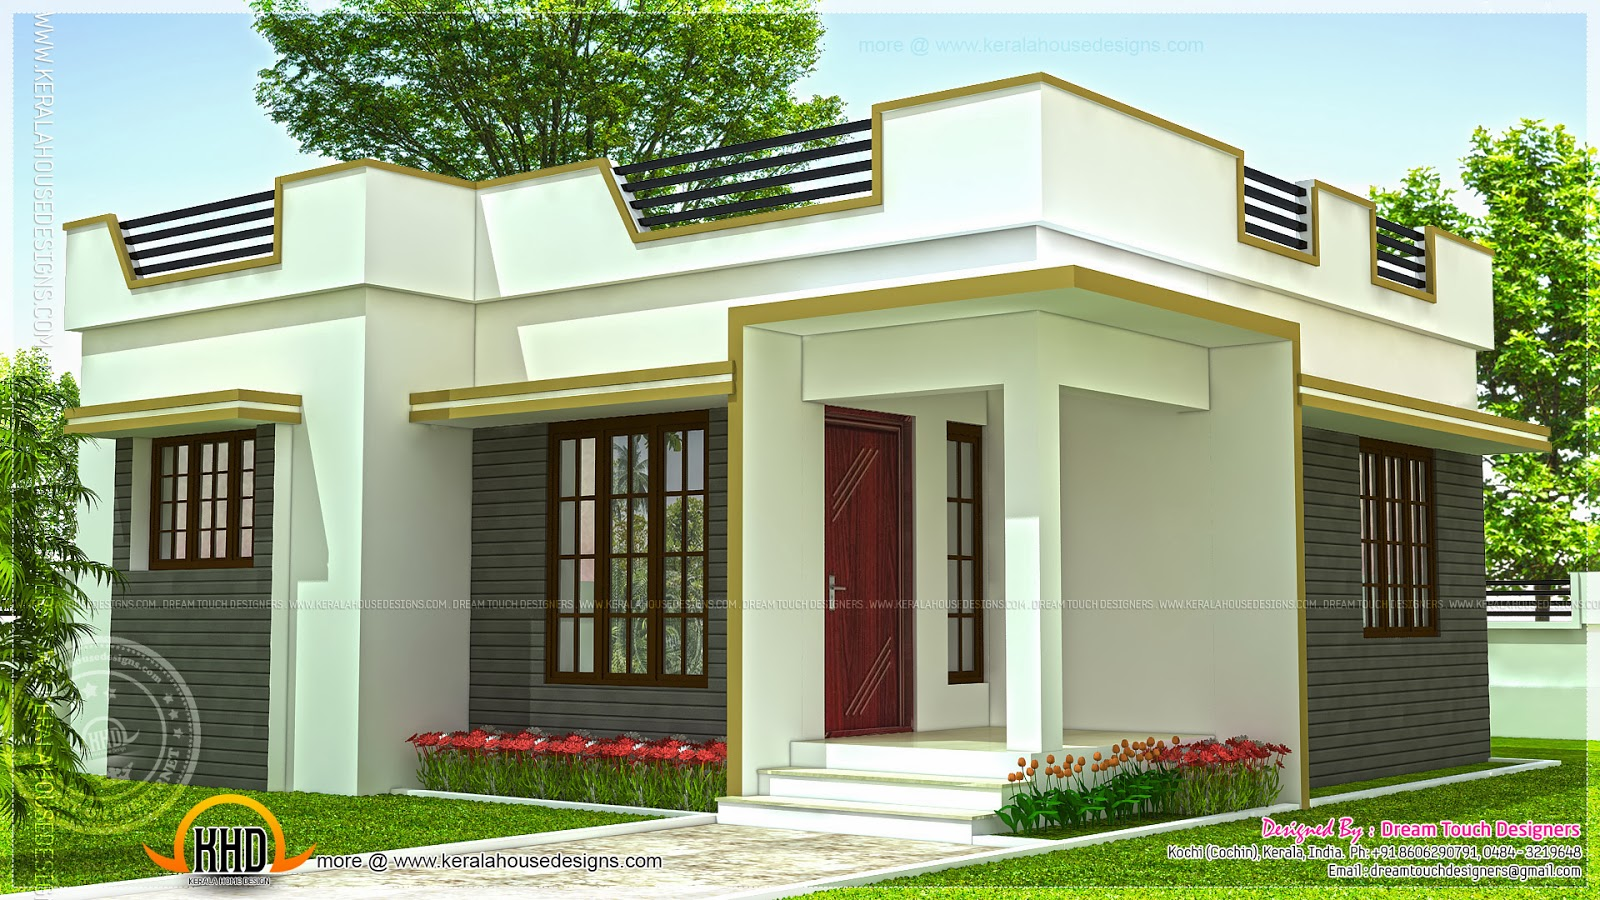 SMALL AND SIMPLE BUT BEAUTIFUL HOUSE WITH ROOF DECK - House design small